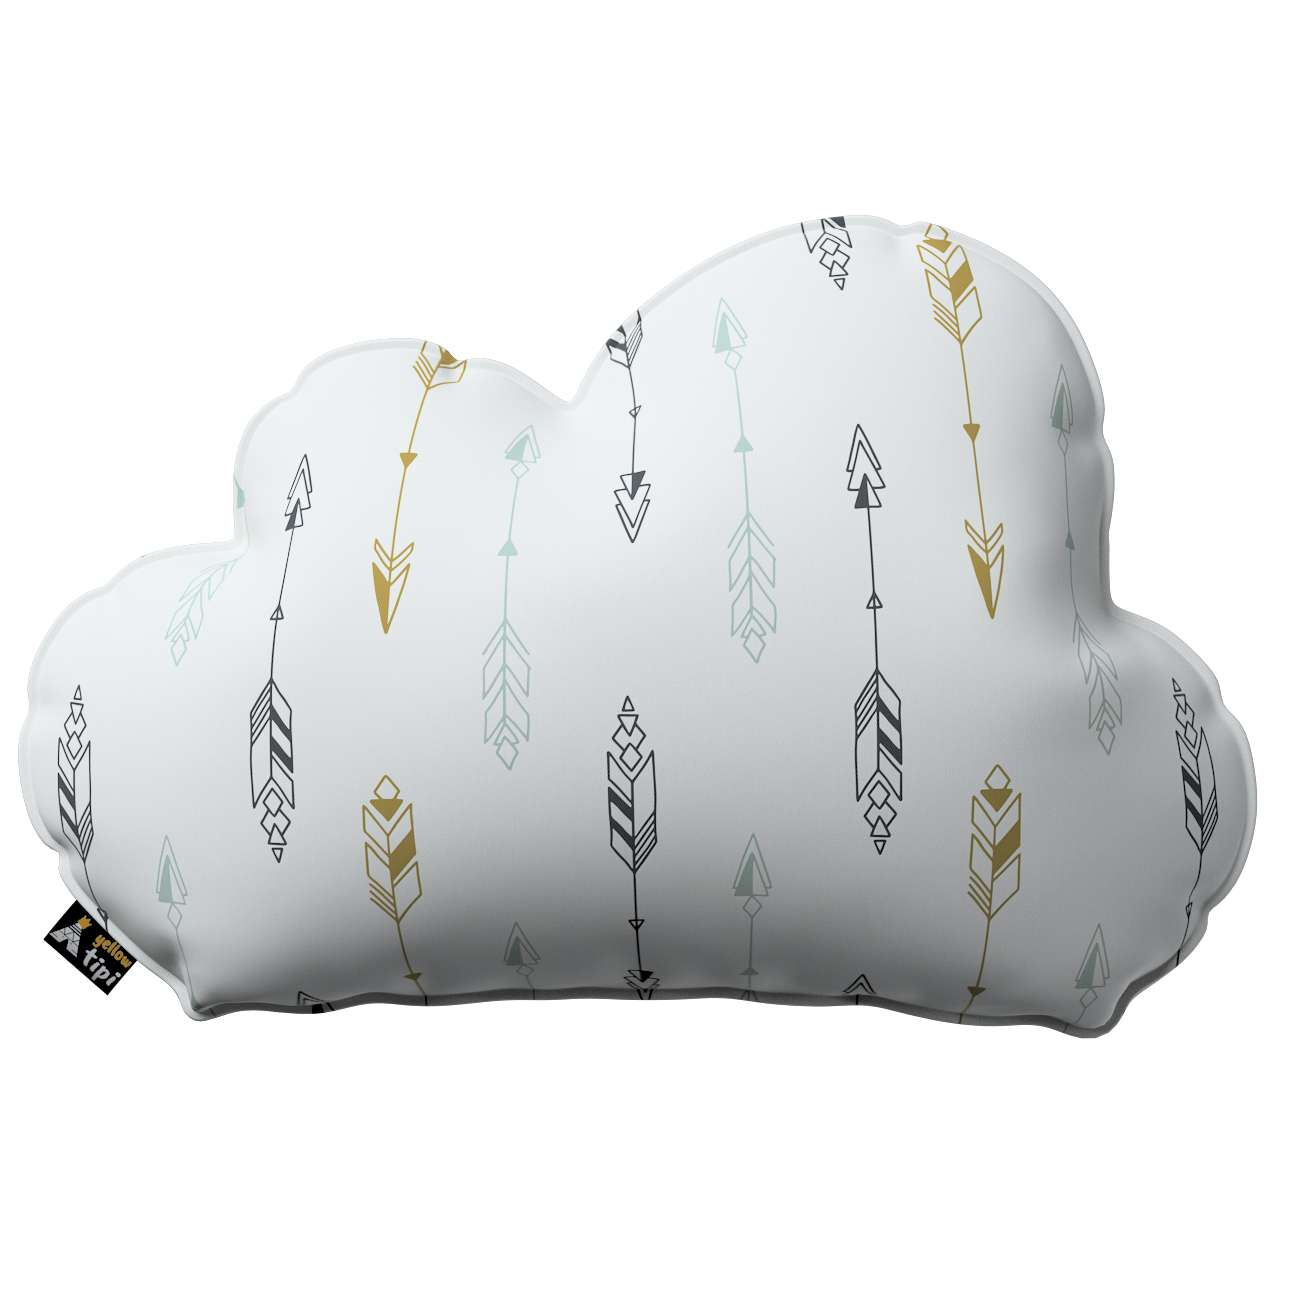 Soft Cloud pillow in collection Magic Collection, fabric: 500-07